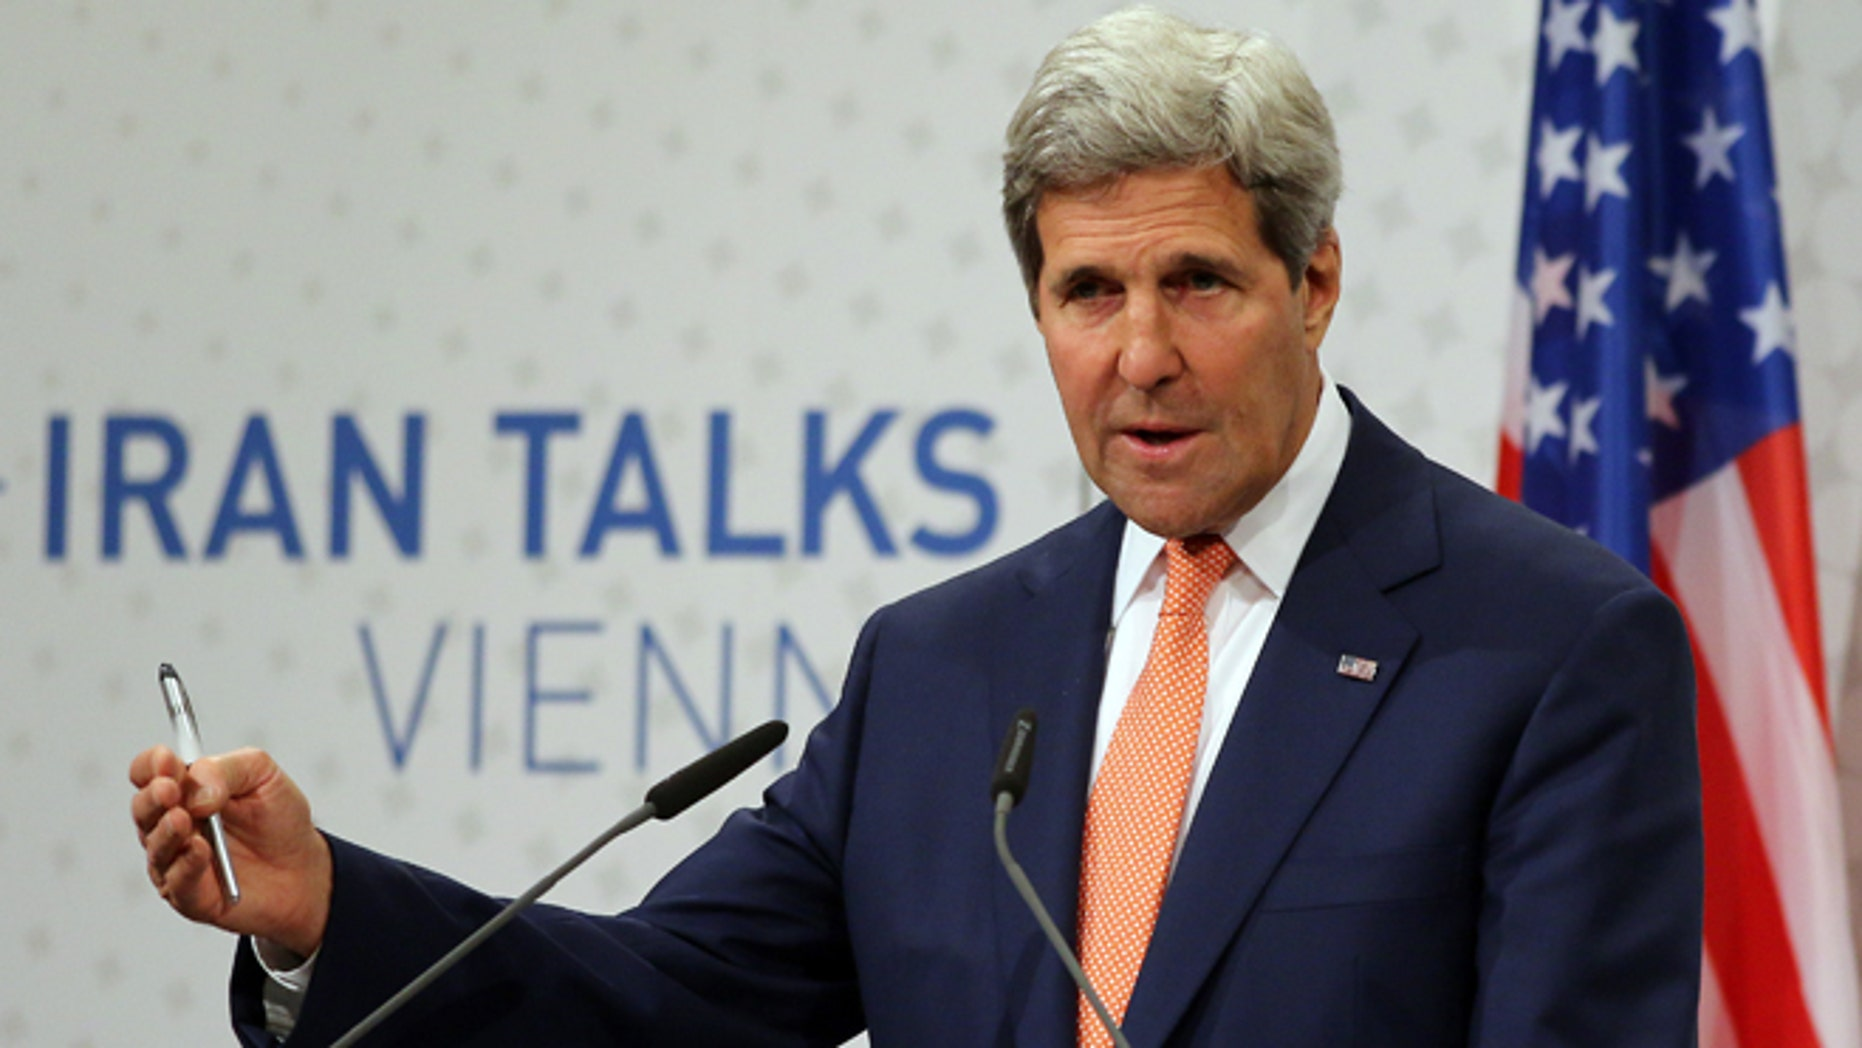 """July 15, 2014: Secretary of State John Kerry speaking to the media after closed-door nuclear talks on Iran in Vienna, Austria. Intense negotiations with Iran have yielded """"tangible progress,"""" U.S. Secretary of State John Kerry said Tuesday, but significant gaps remain ahead of a July 20 target date for a deal meant to put firm curbs on Tehran's nuclear activities in exchange for an end to sanctions."""